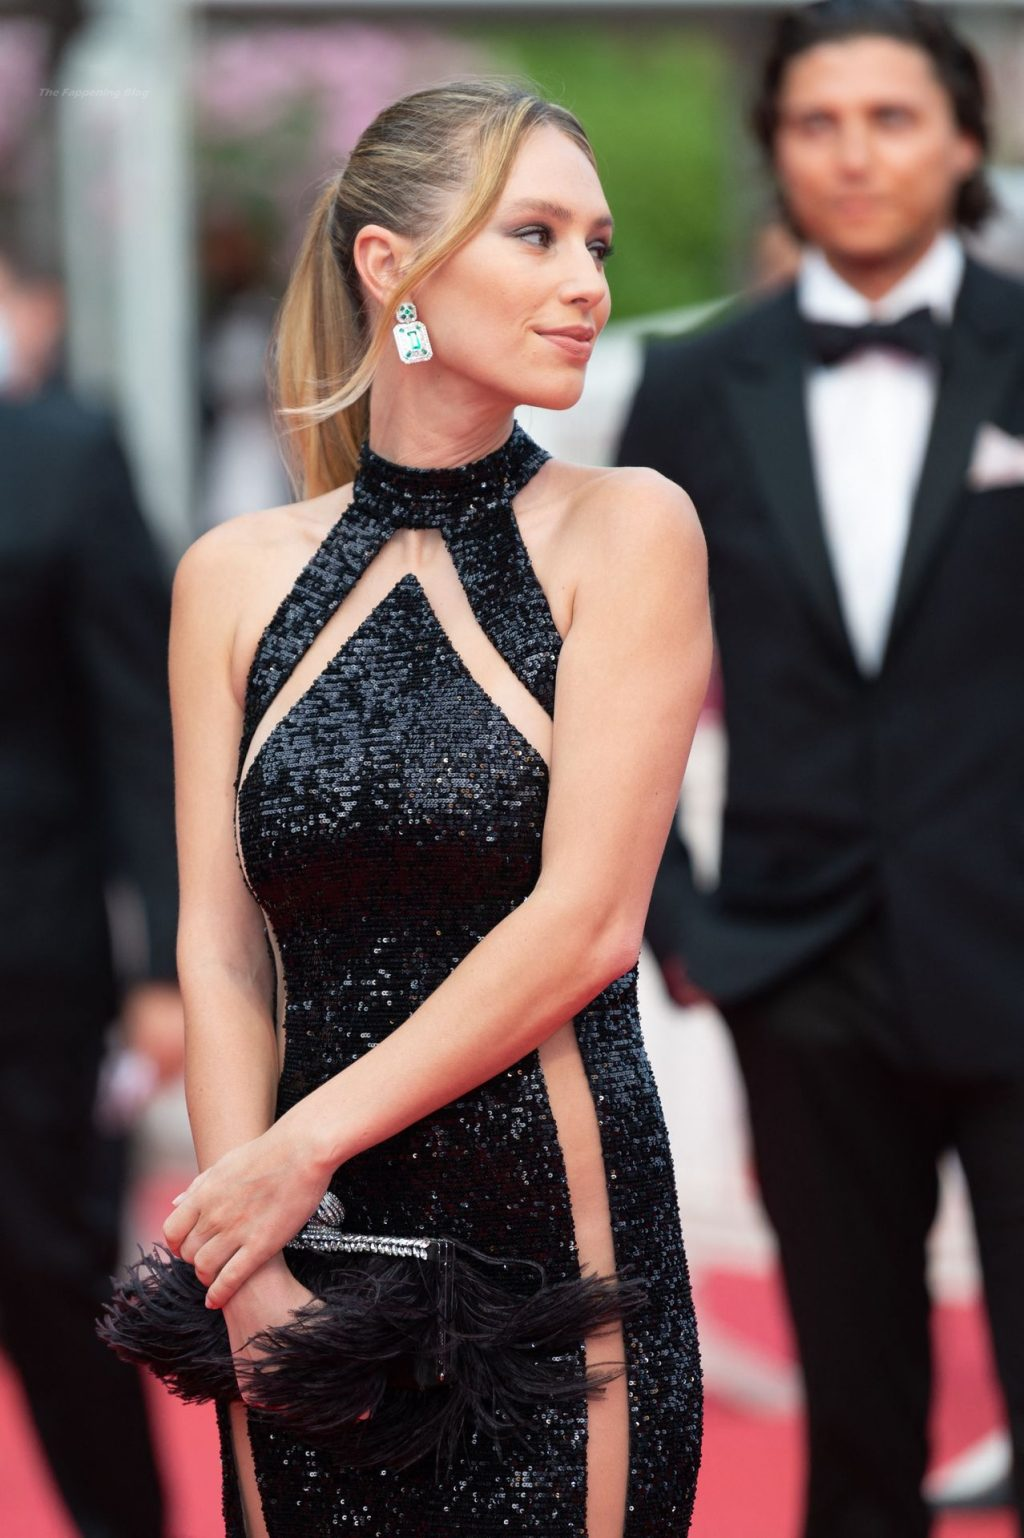 Dylan Penn Stuns on the Red Carpet at the 74th Annual Cannes Film Festival (104 Photos)